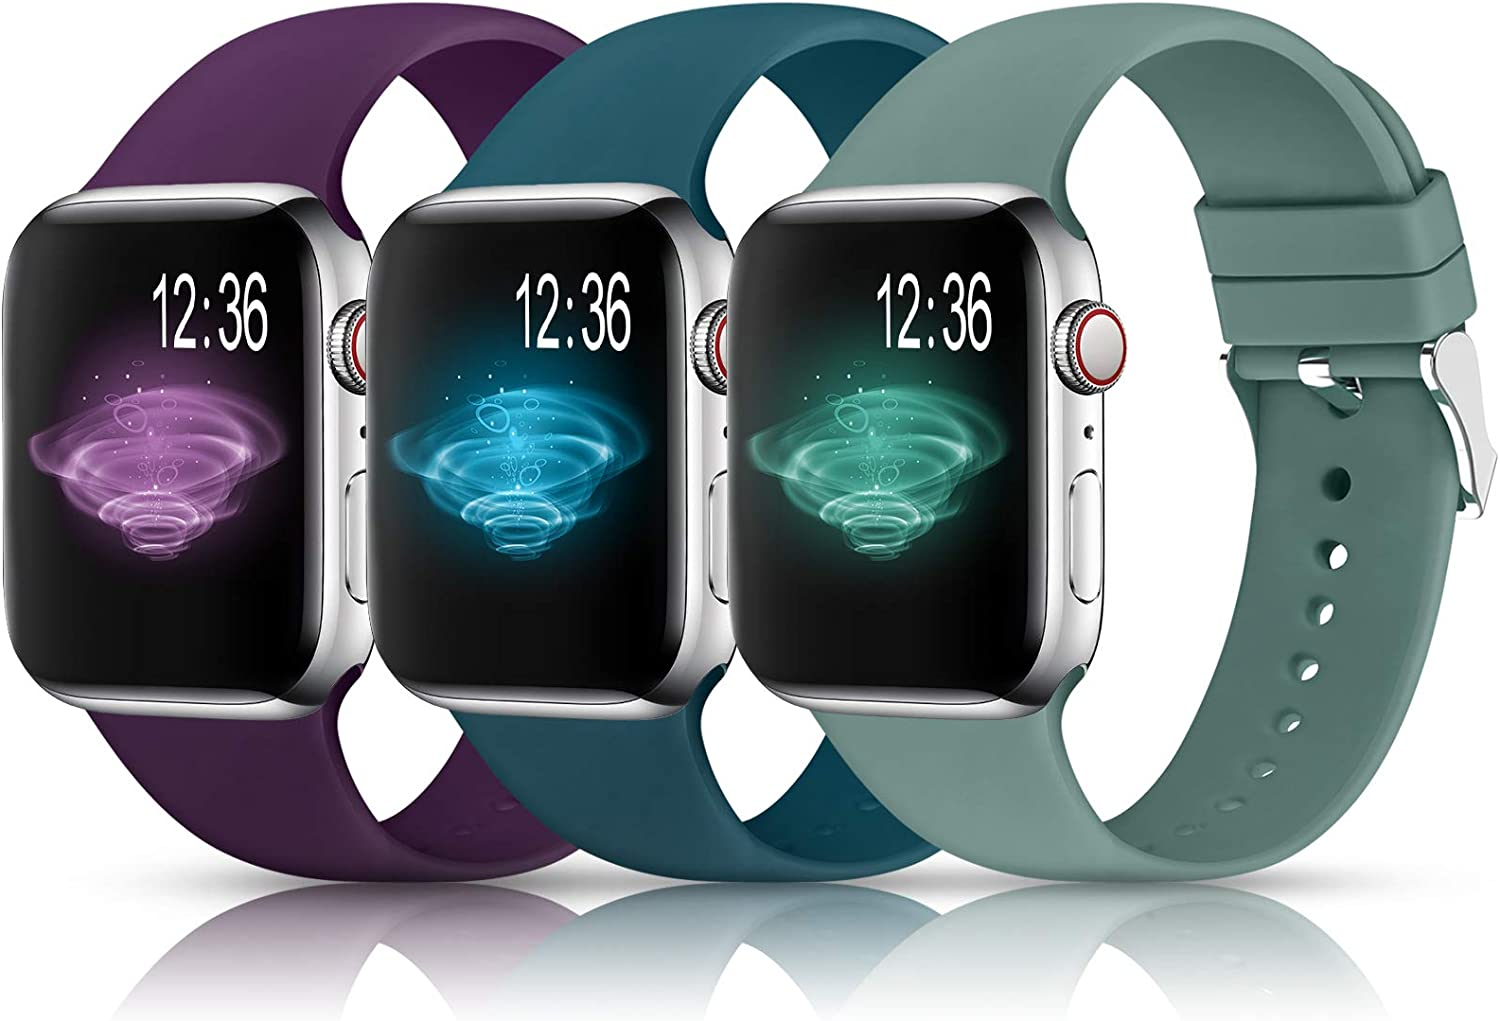 Sport Bands Compatible with Apple Watch Band 38mm 40mm 42mm 44mm,Soft Silicone Replacement Wristbands Straps for iWatch Series 1/2/3/4/5 Women Men(T,Cactus,Olive Green,Purple)